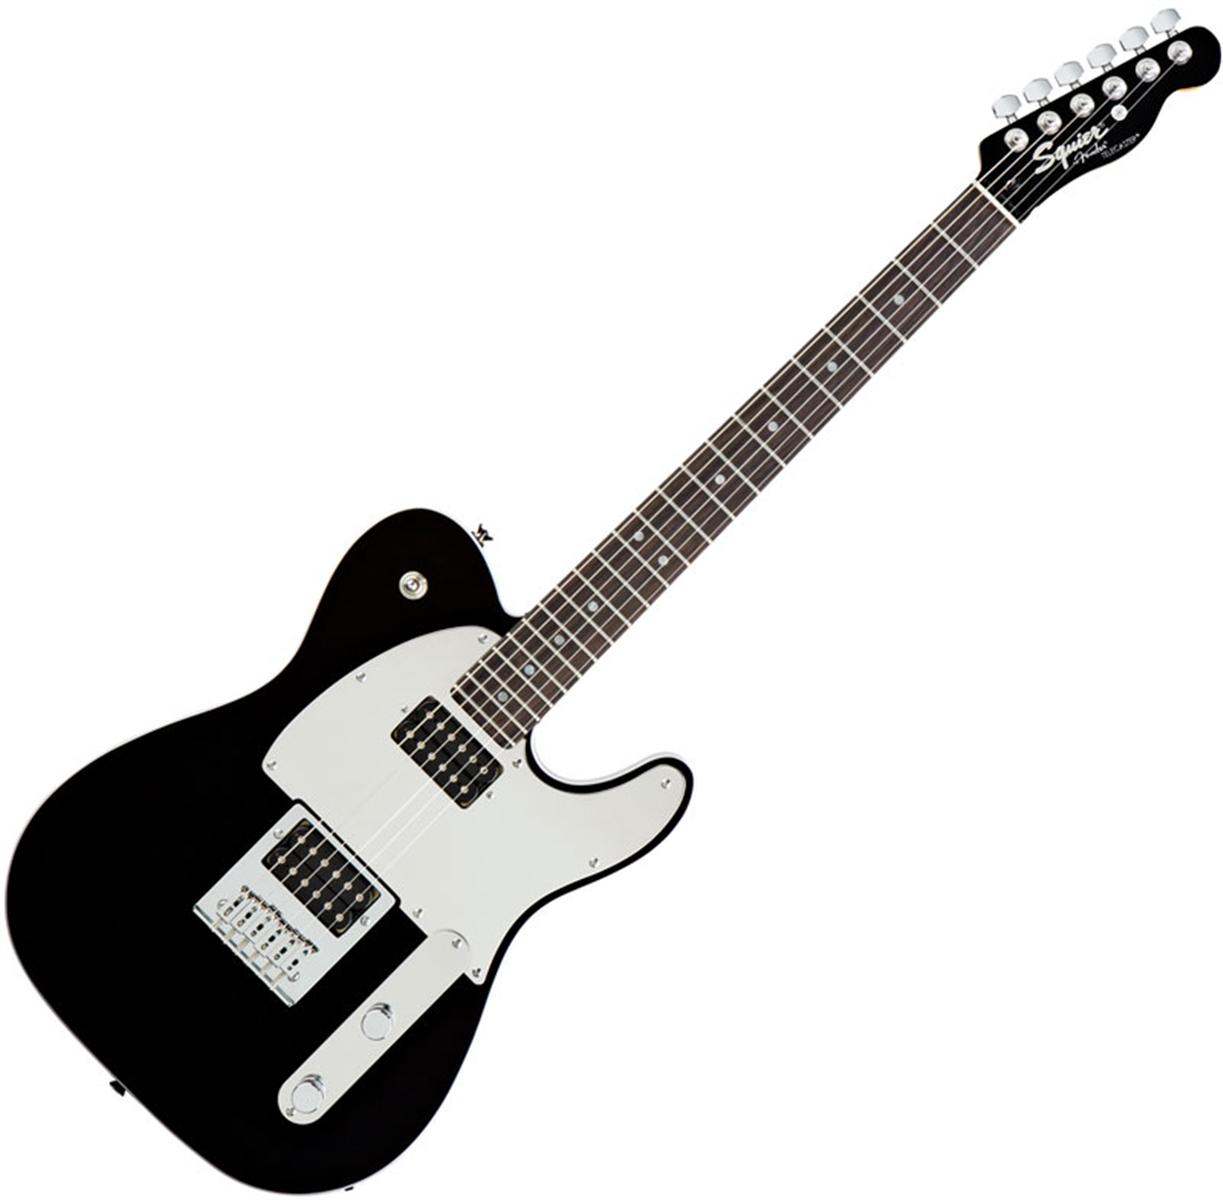 Electric Guitar Clipart Black And White | Free download on ...